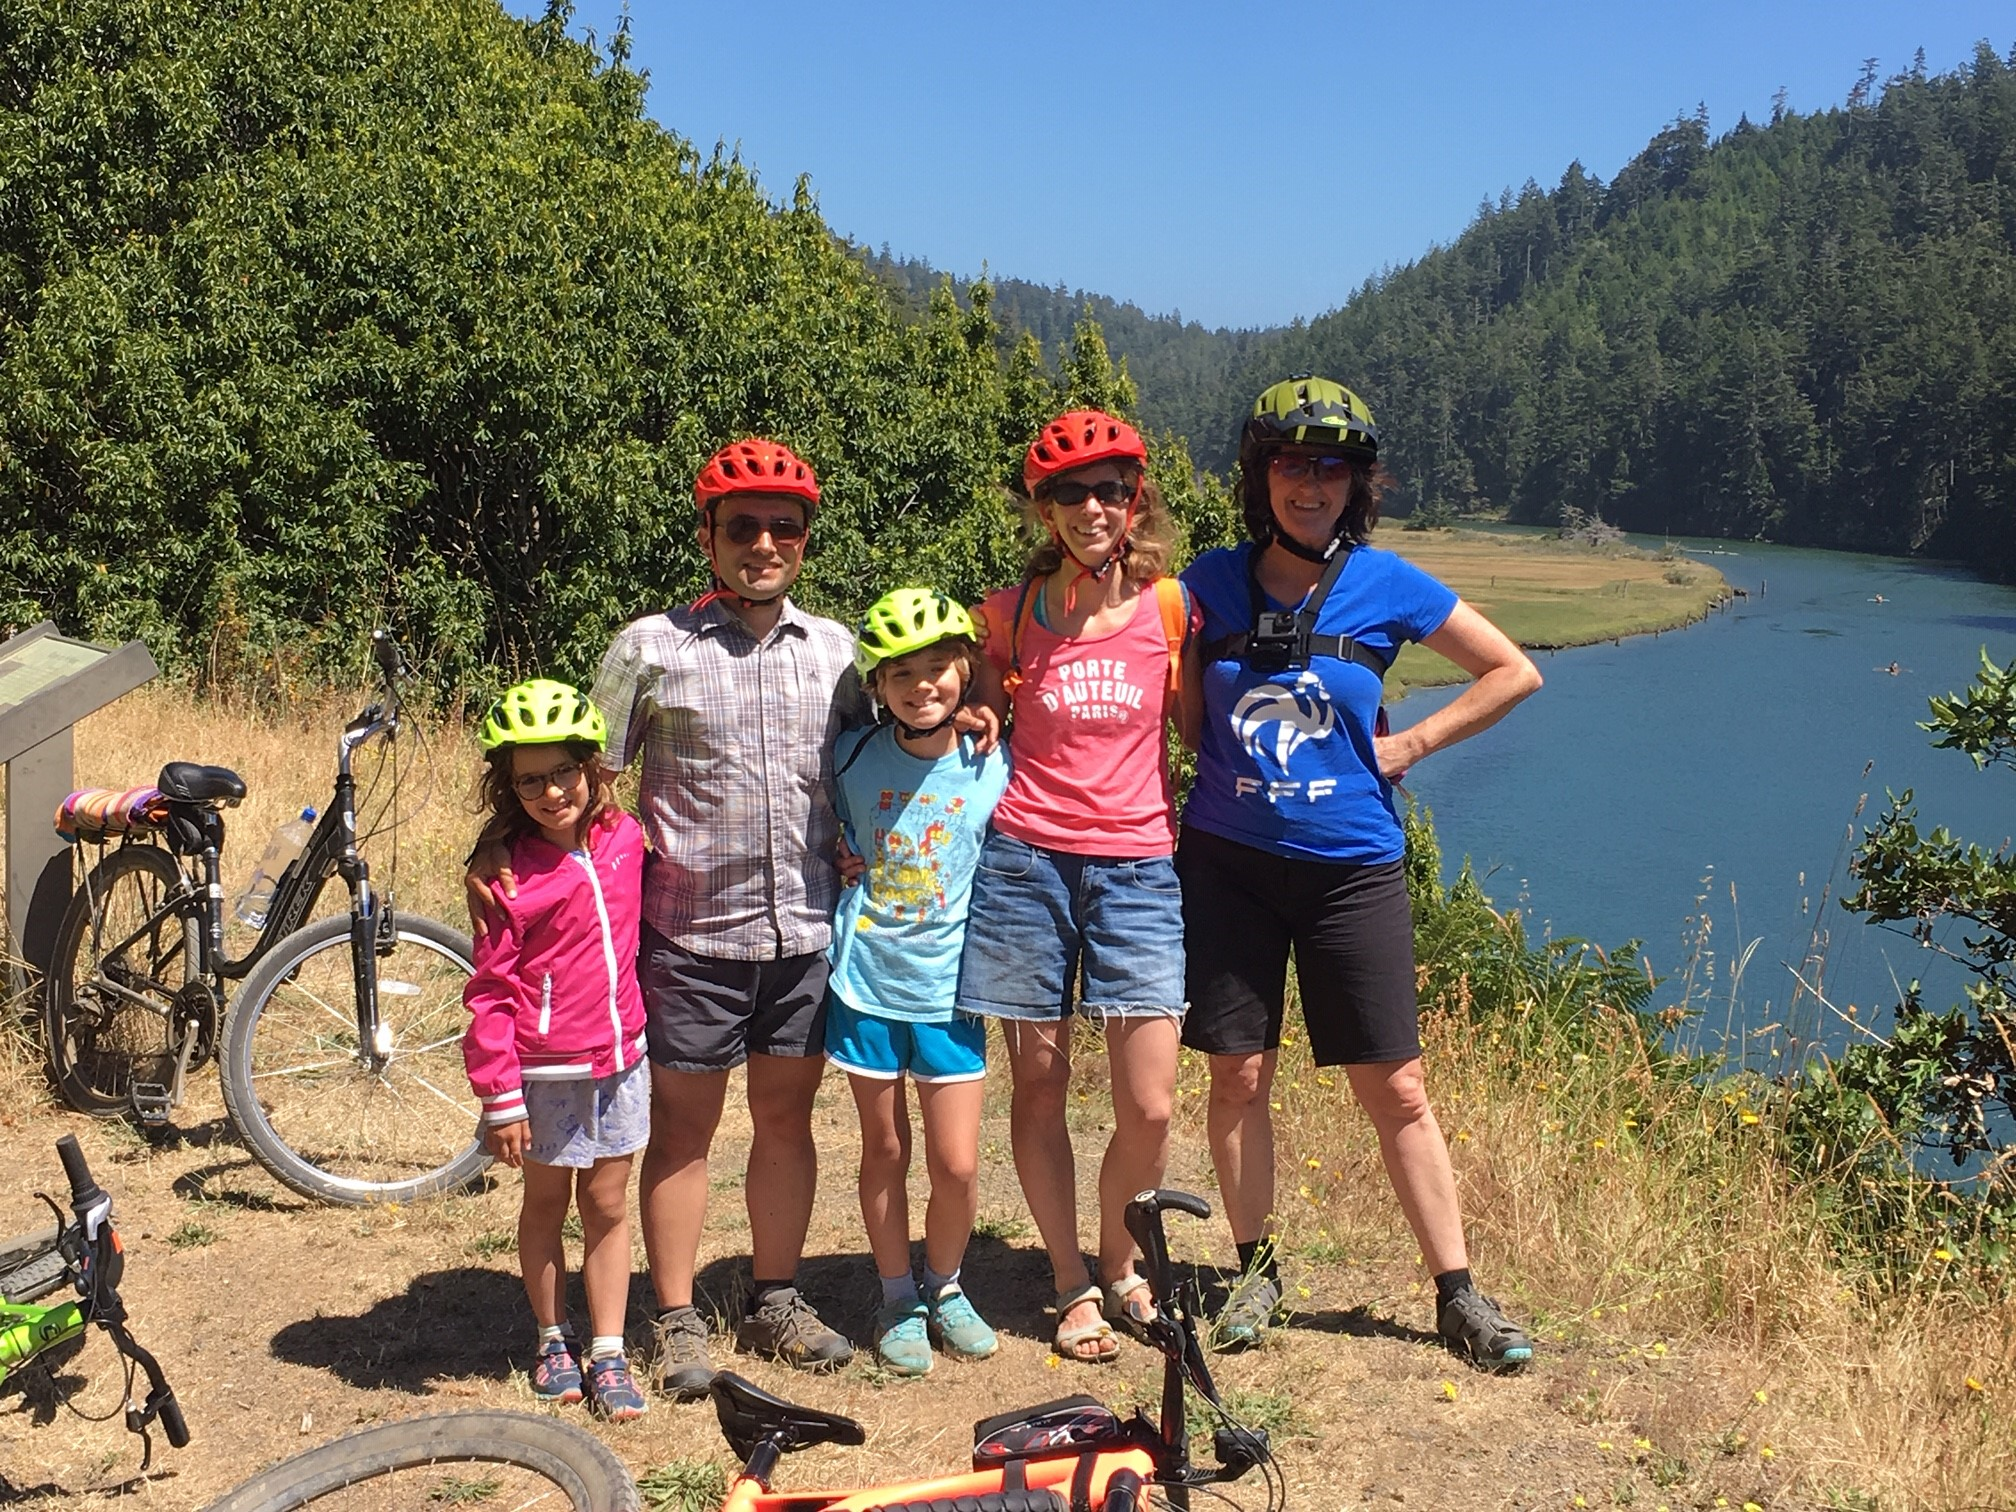 Biking along the haul road in Mendocino.